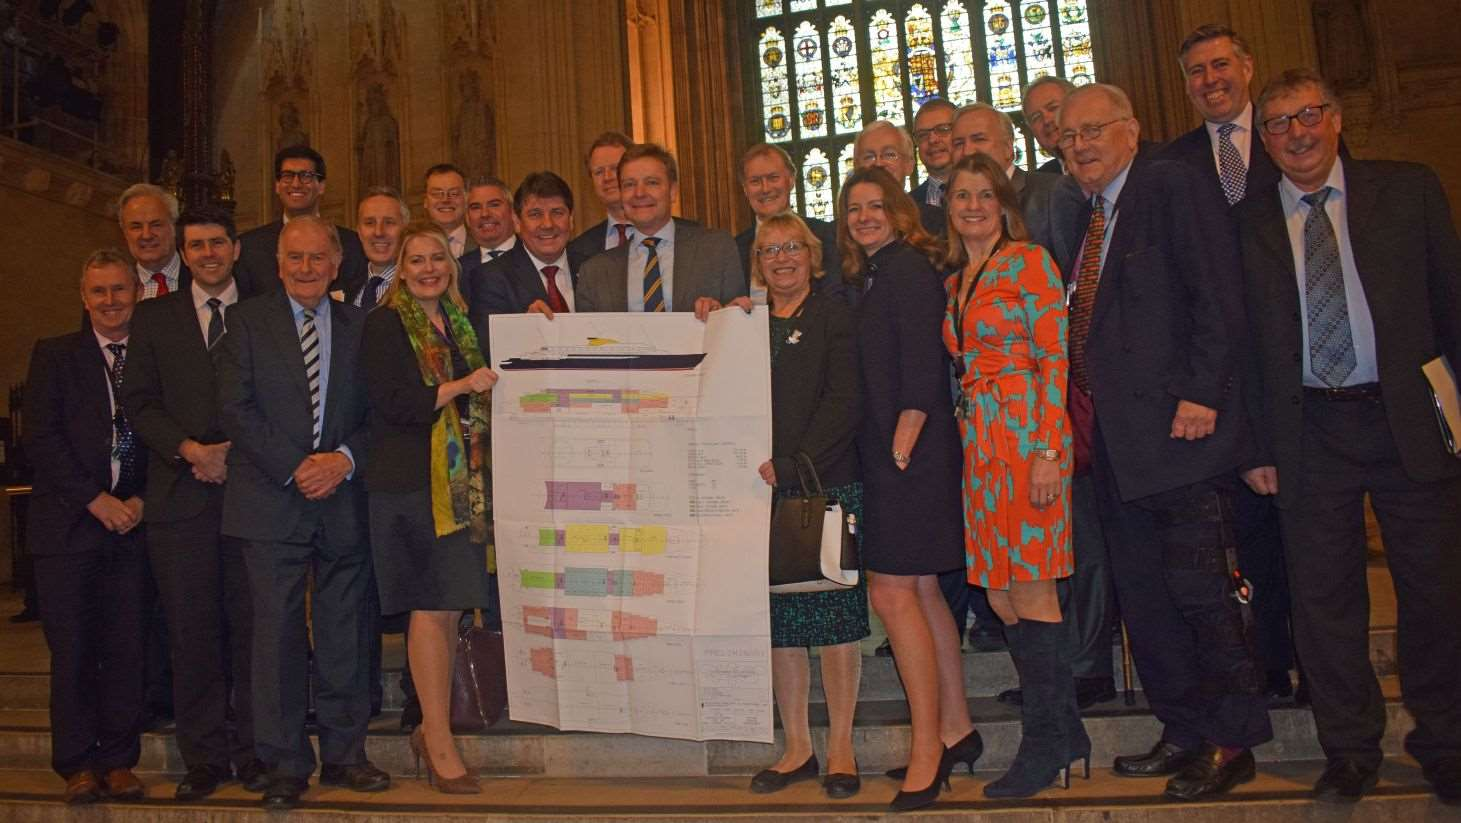 Photo-call of MPs in Westminster Hall with the plans for a new yacht